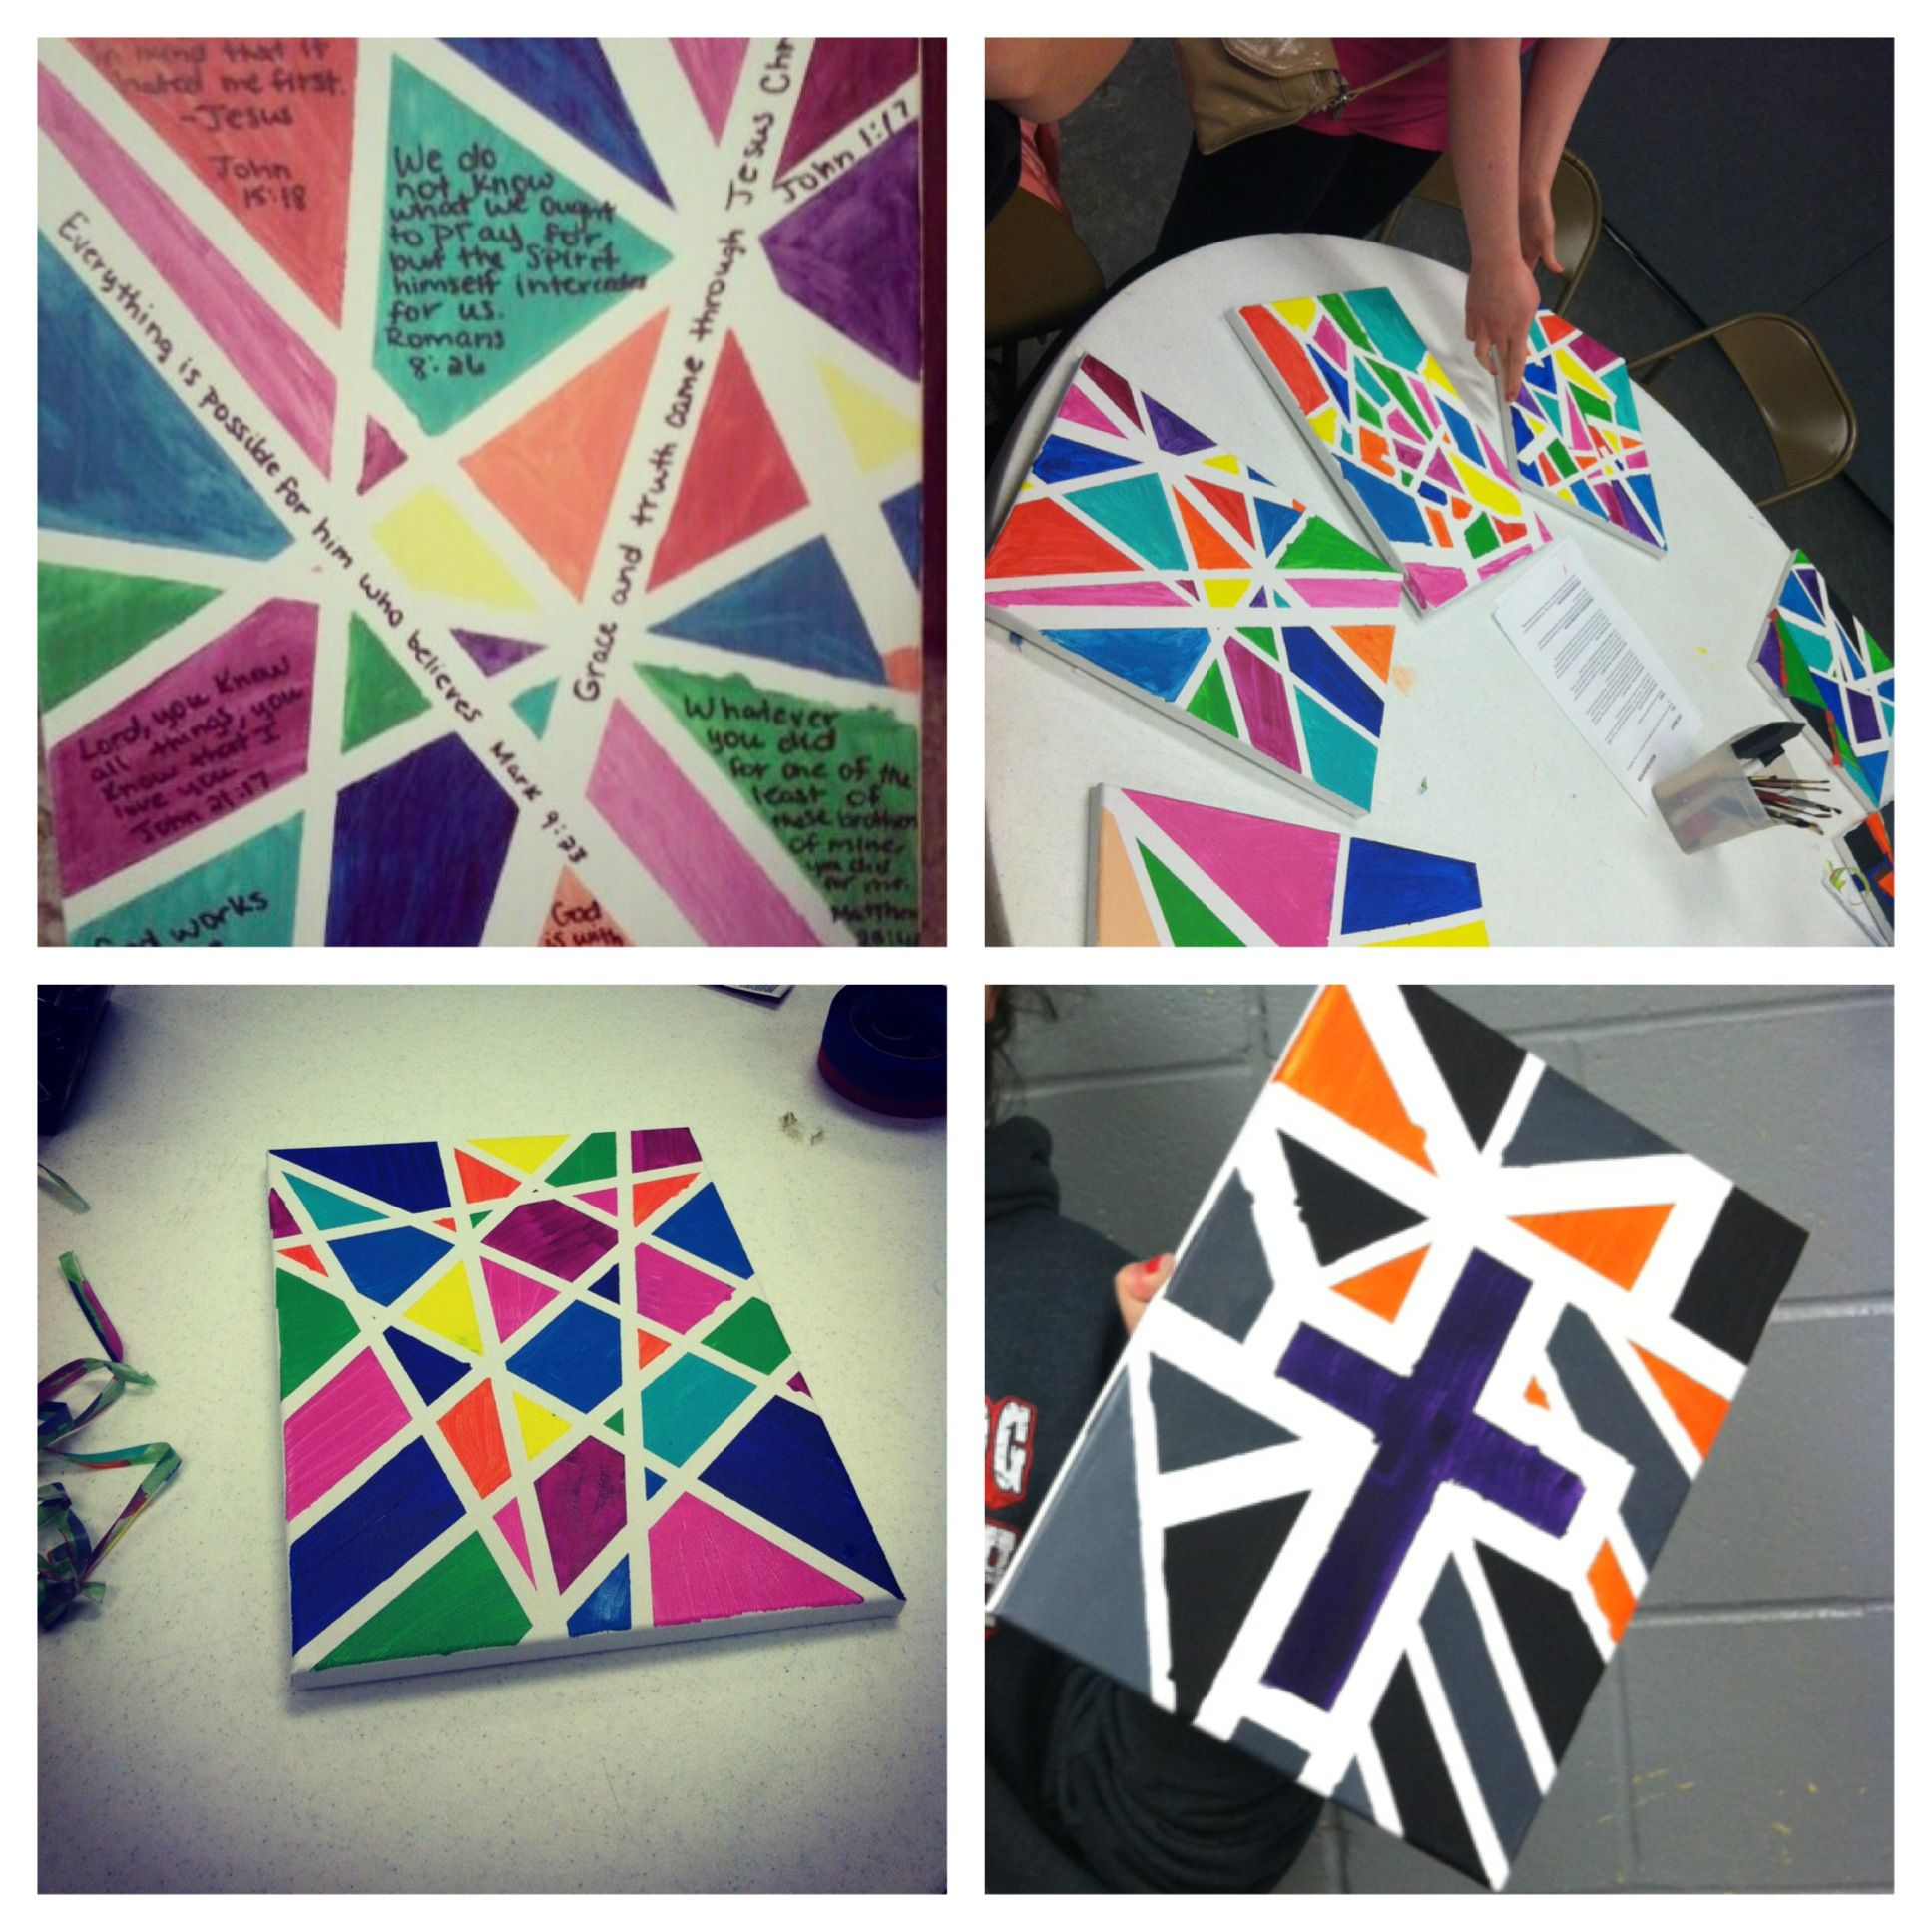 Painting Ideas With Tape: DIY Painting-Super Easy! You Can Do Any Pattern By Just